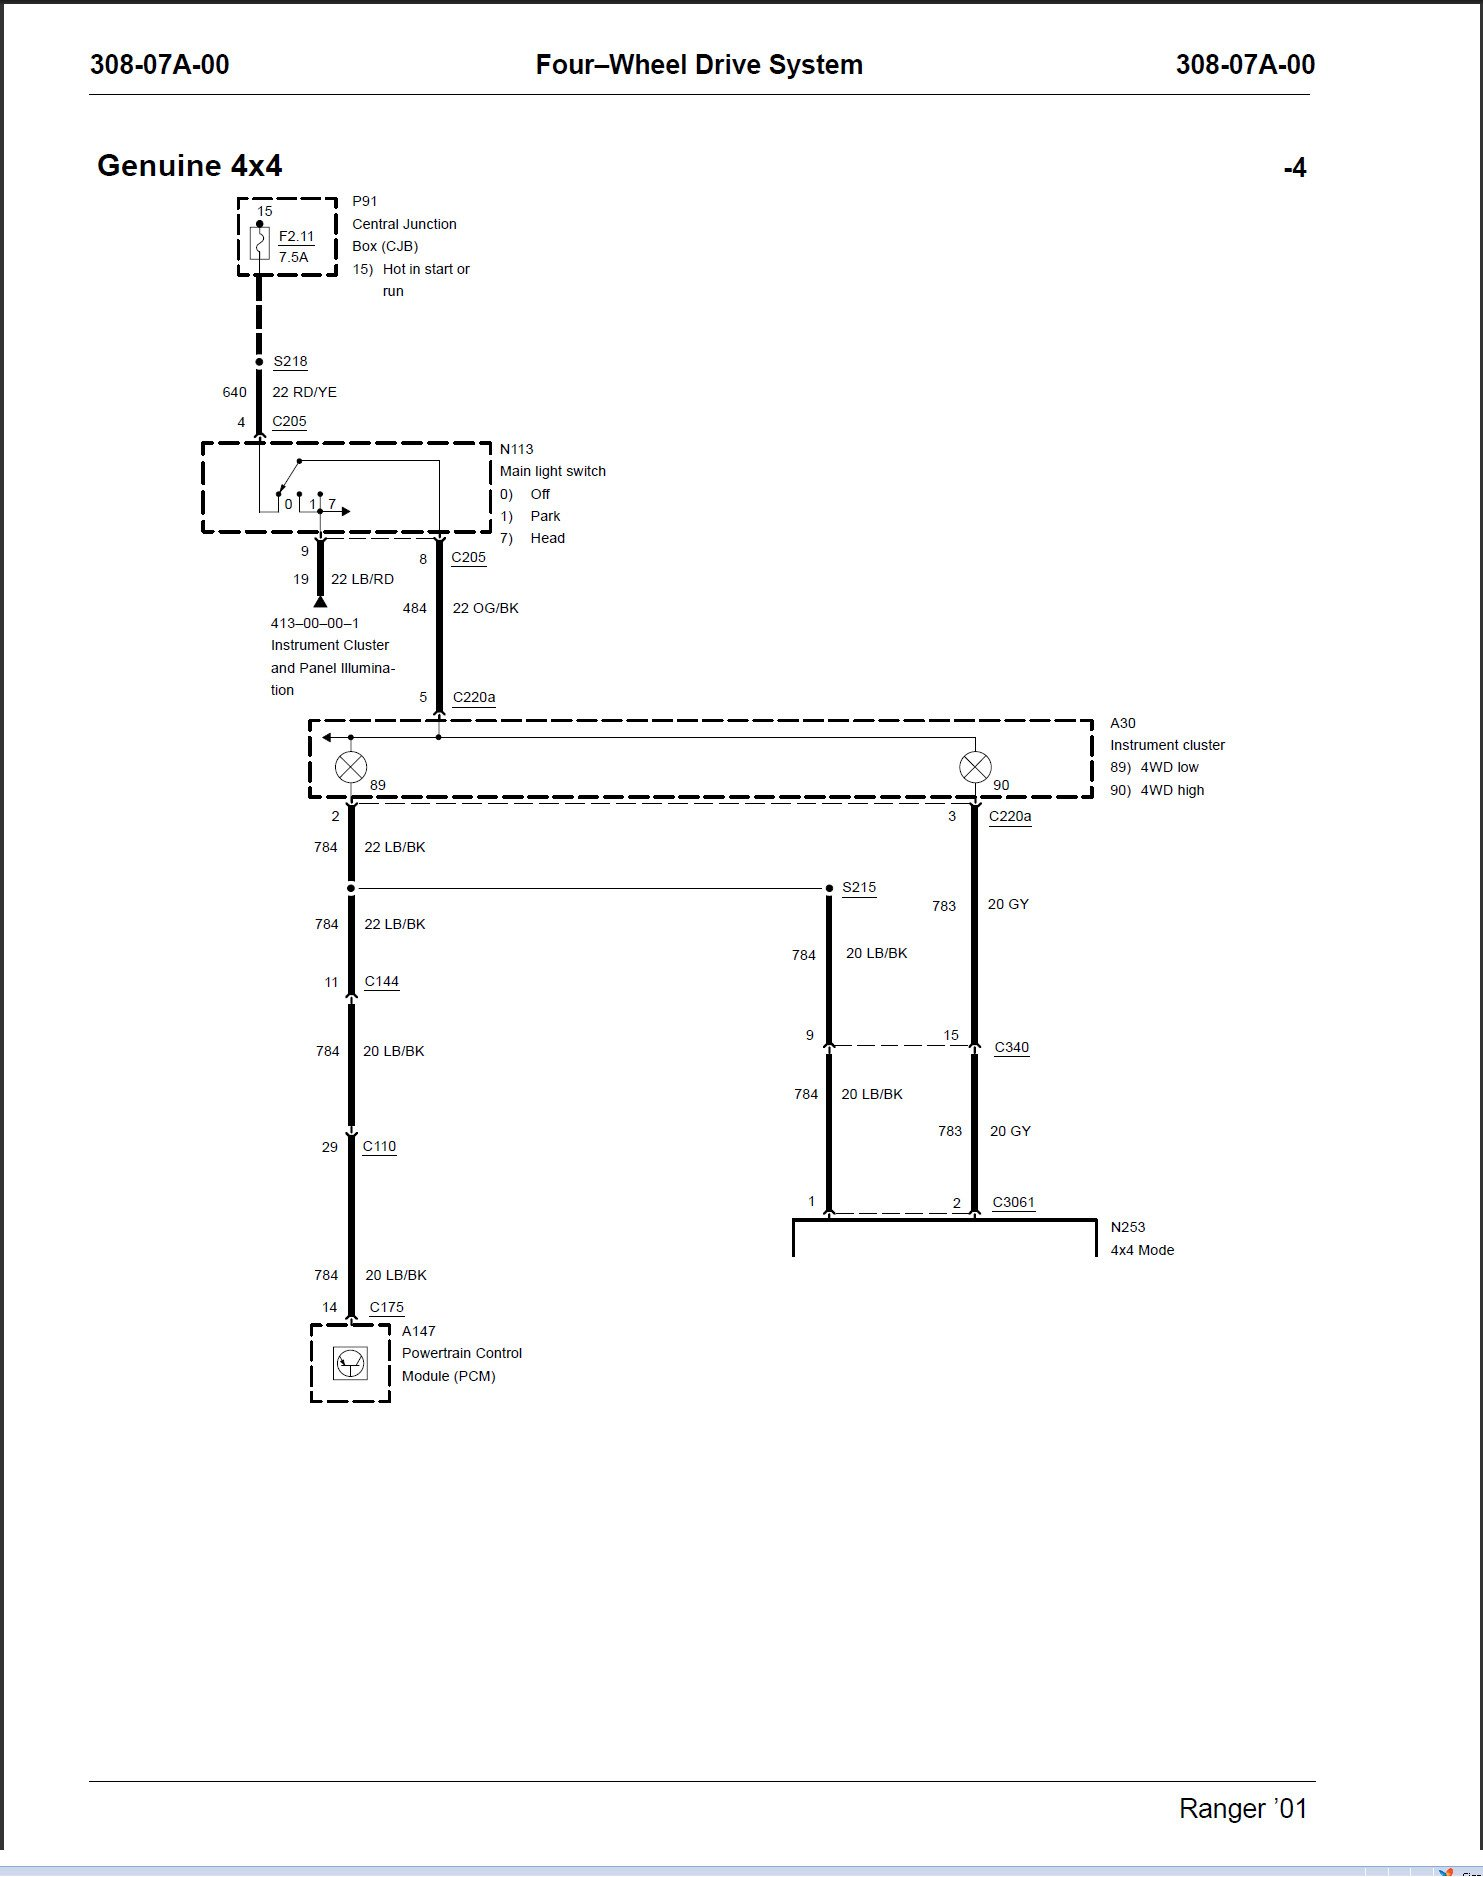 Need Wiring Diagram Schematic For 2004 Ford Ranger 4x4 V6